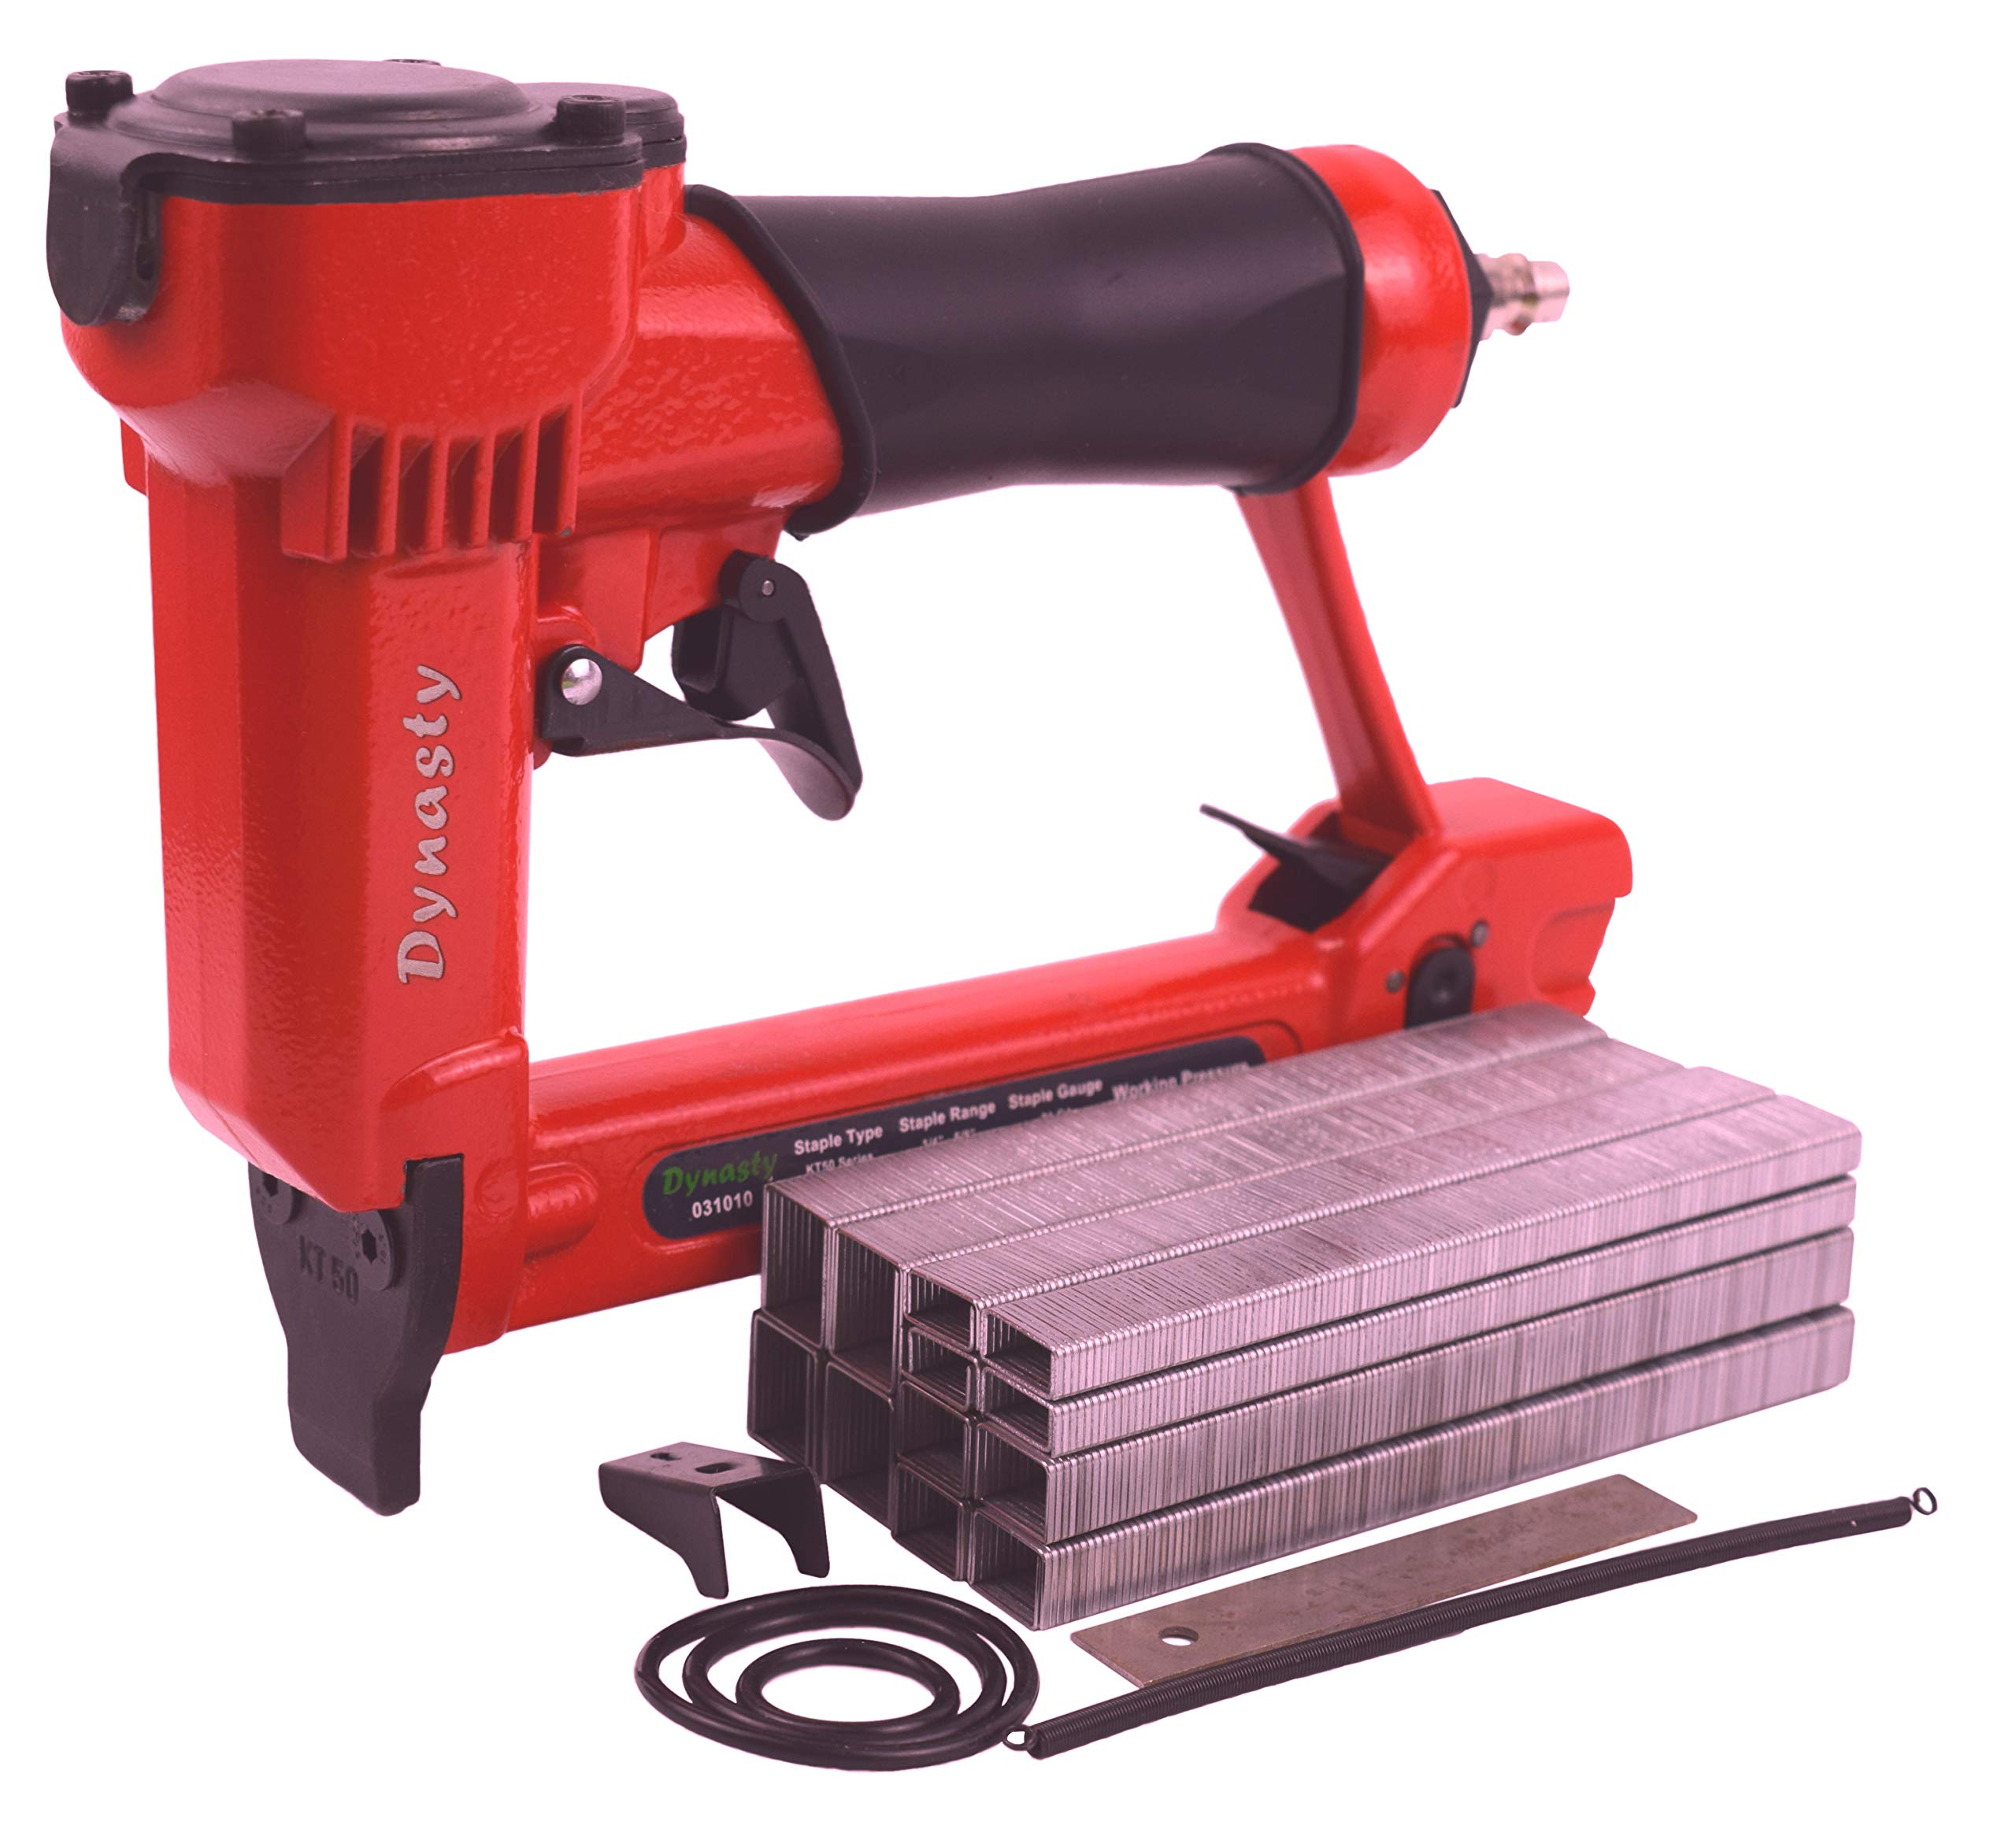 Pneumatic Staple Gun Kit, KT-50 Type 1/2'' Wide Crown Air Stapler, 21 Gauge, 1/4-Inch to 5/8-Inch, with 3000 staples and spare parts